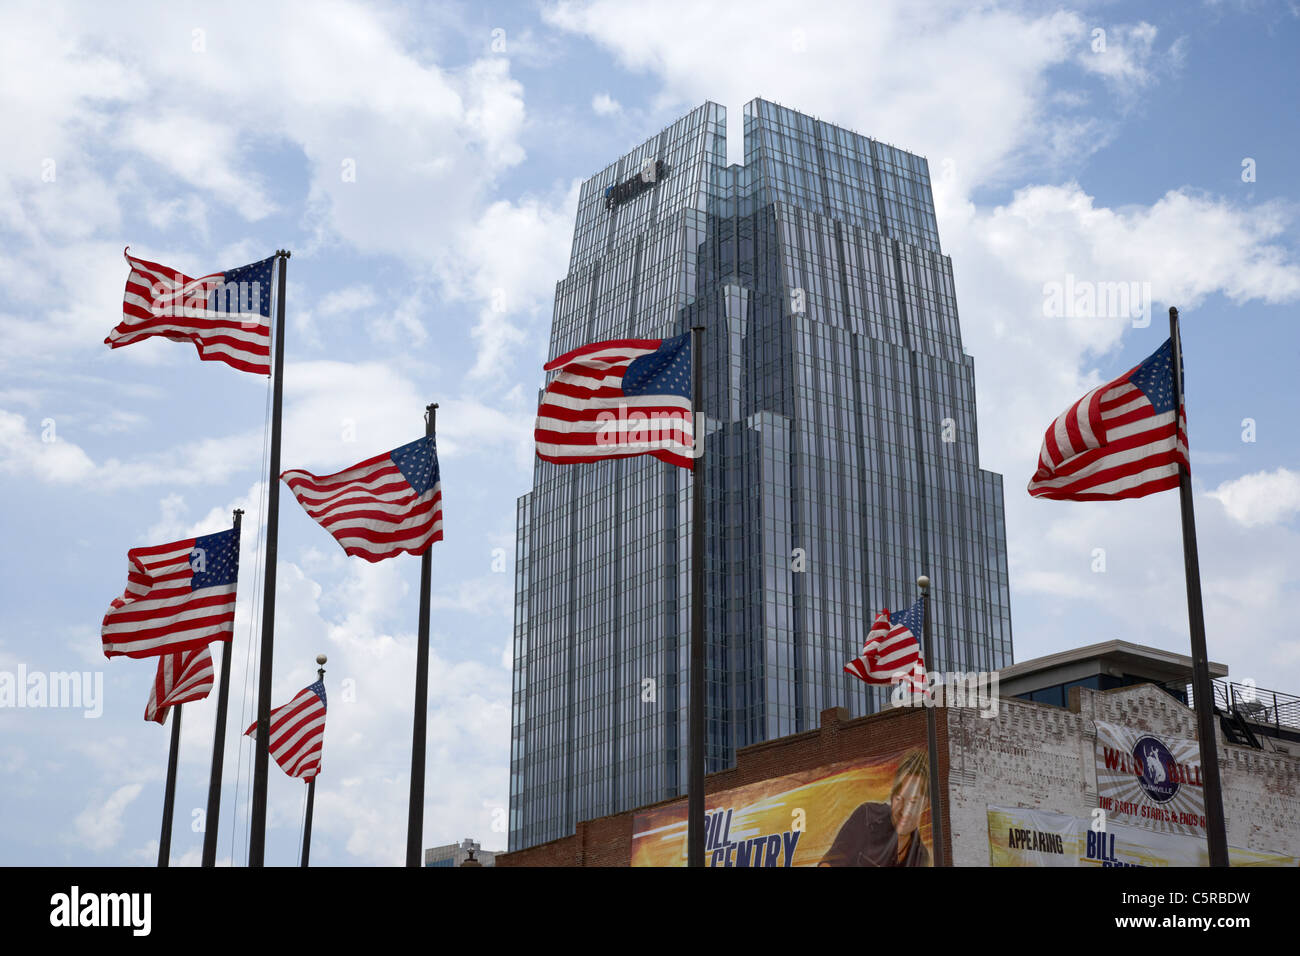 us flags flying in front of the pinnacle building downtown Nashville Tennessee USA - Stock Image